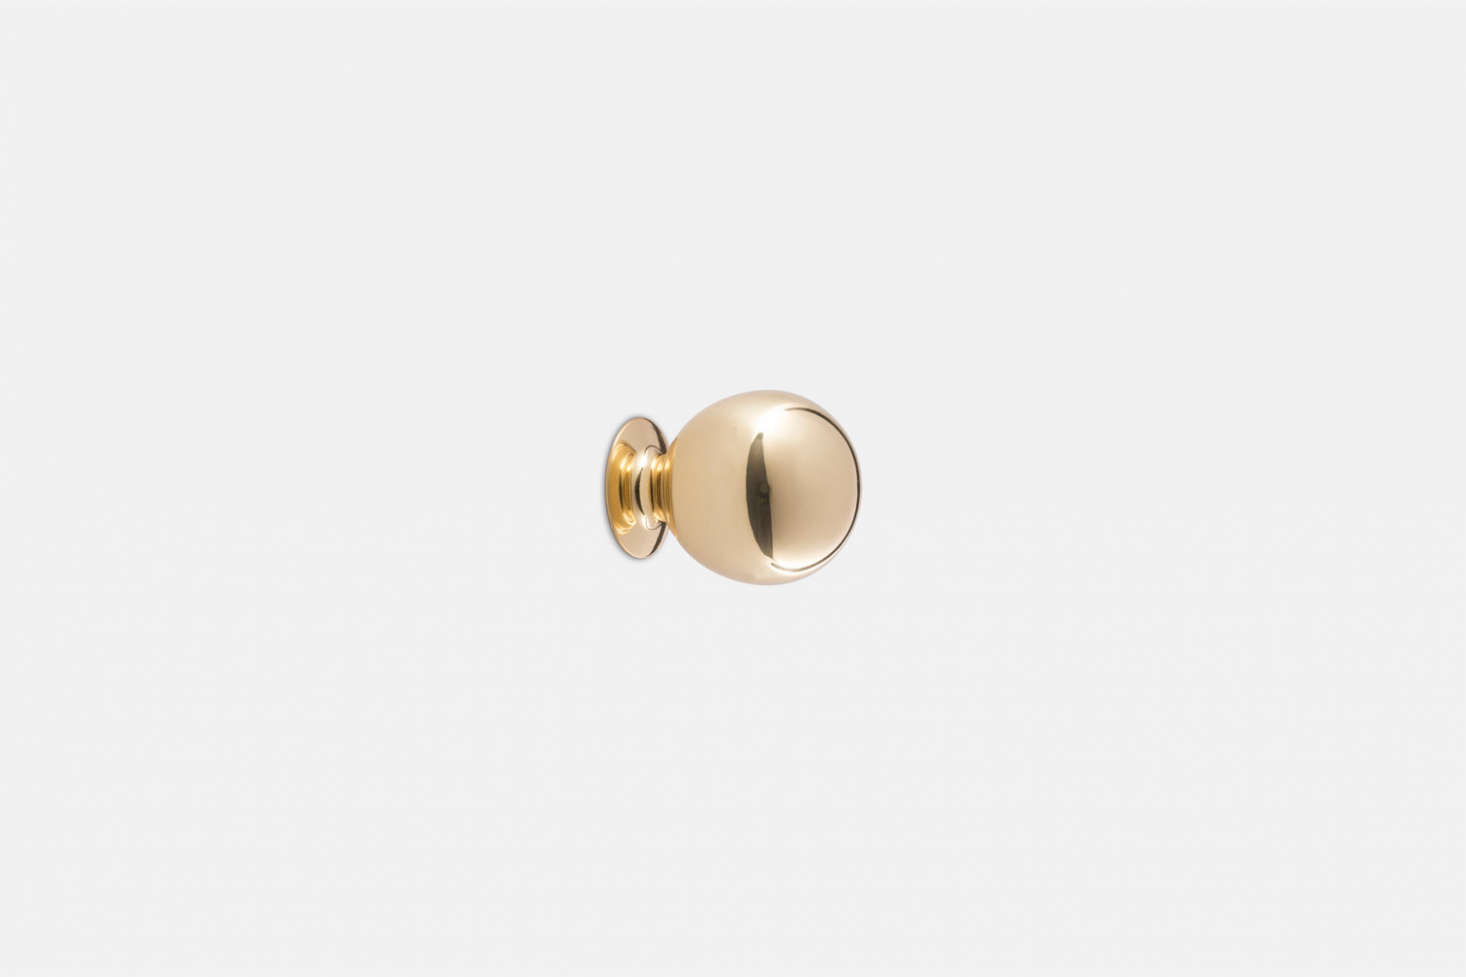 The Ball Cabinet Knob in unlacquered brass is $src=